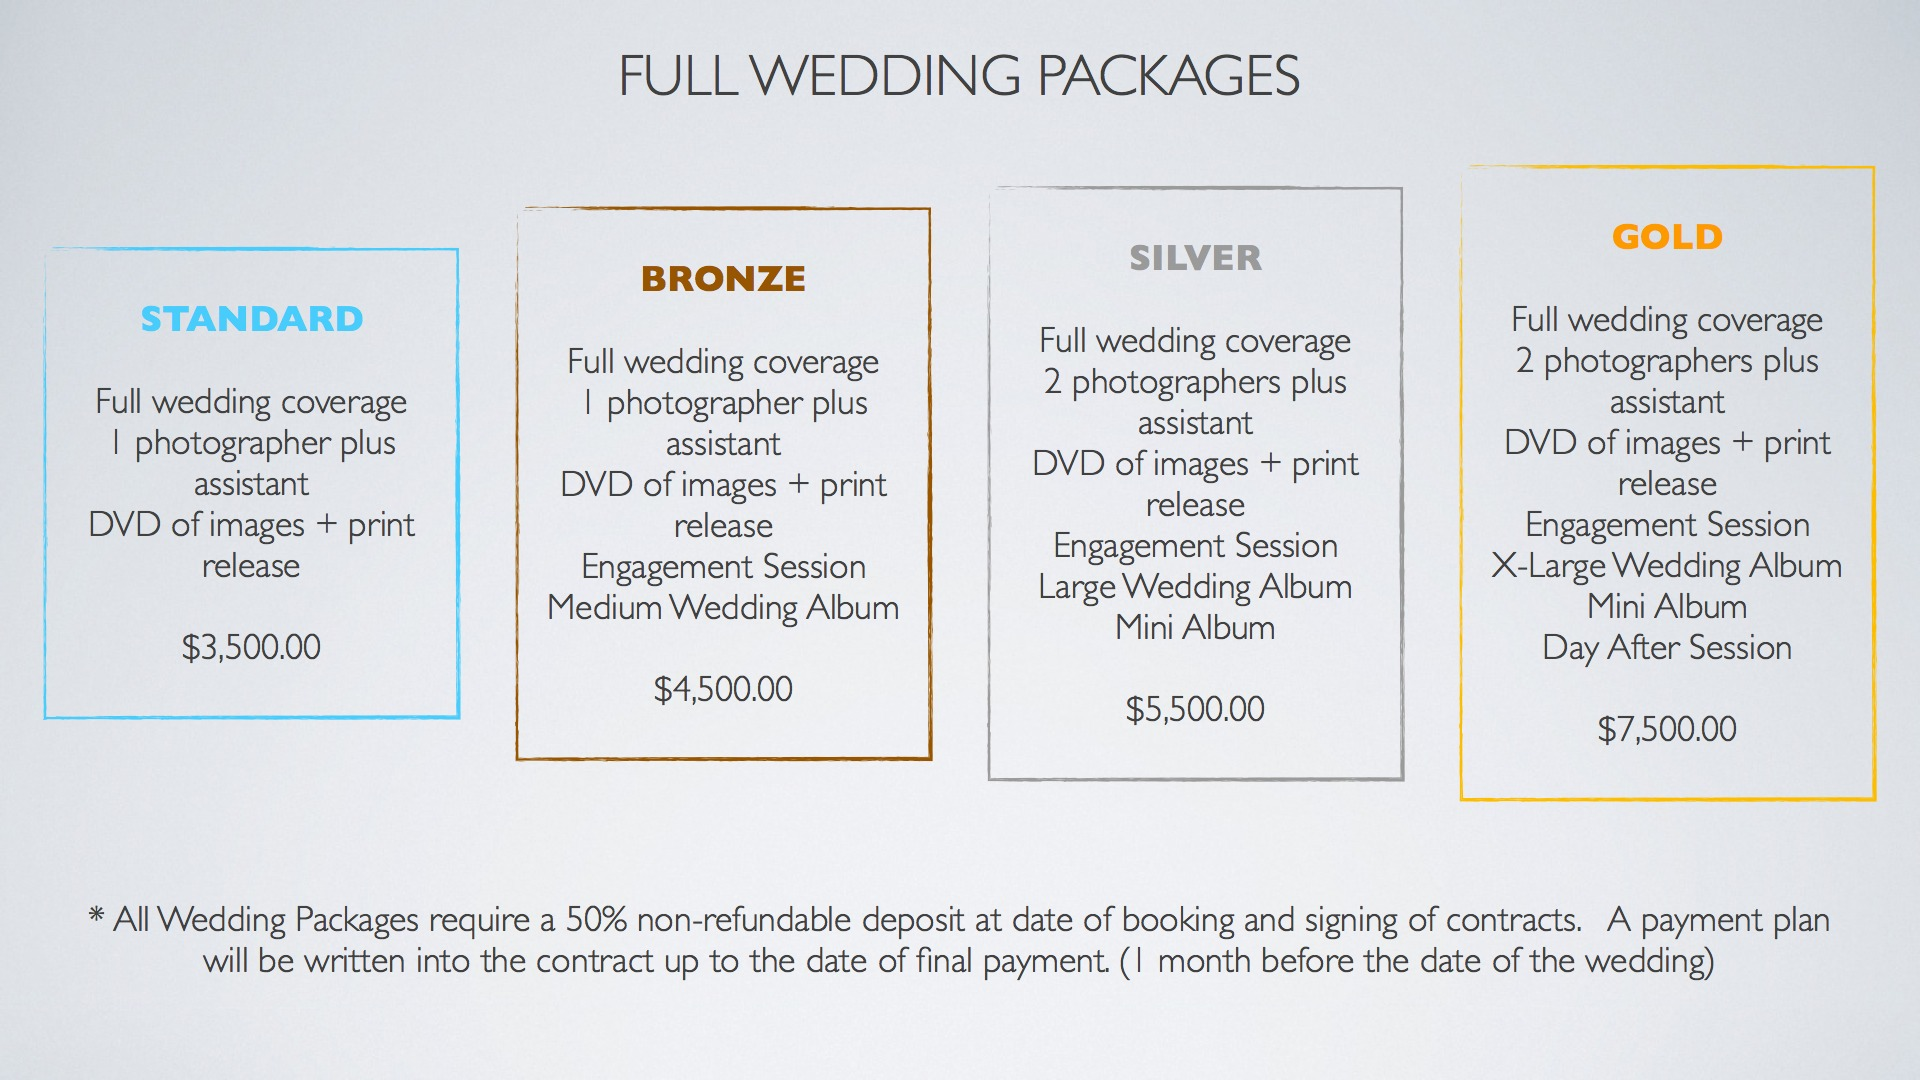 026-photos-by-chris-martin-wedding-pricing-and-packages